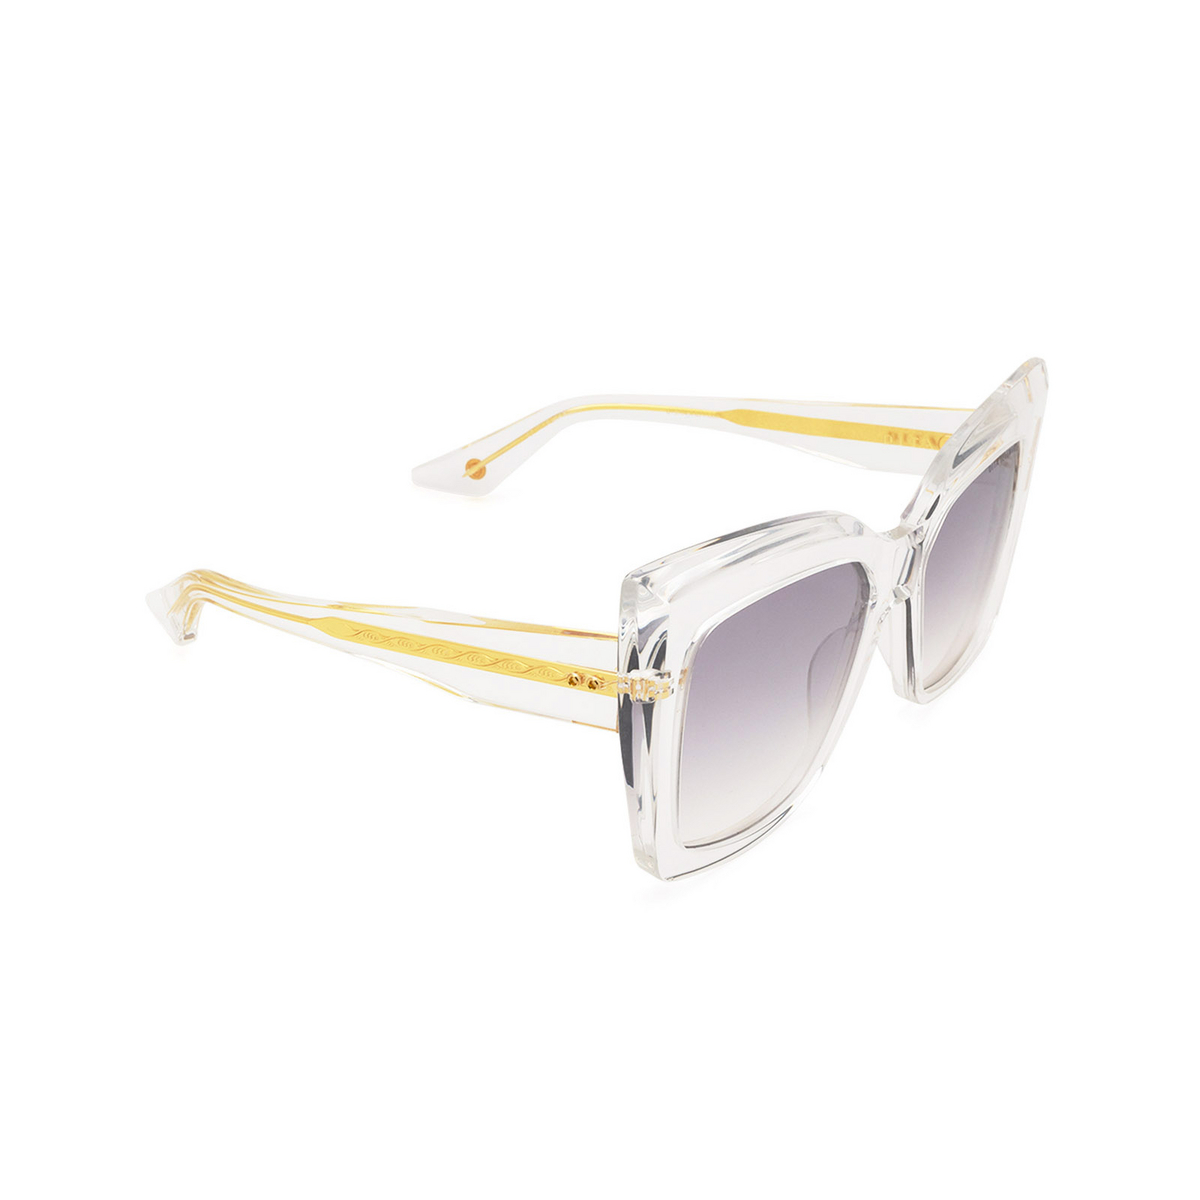 Dita® Butterfly Sunglasses: Telemaker DTS704-A-03-Z color Crystal Clr.